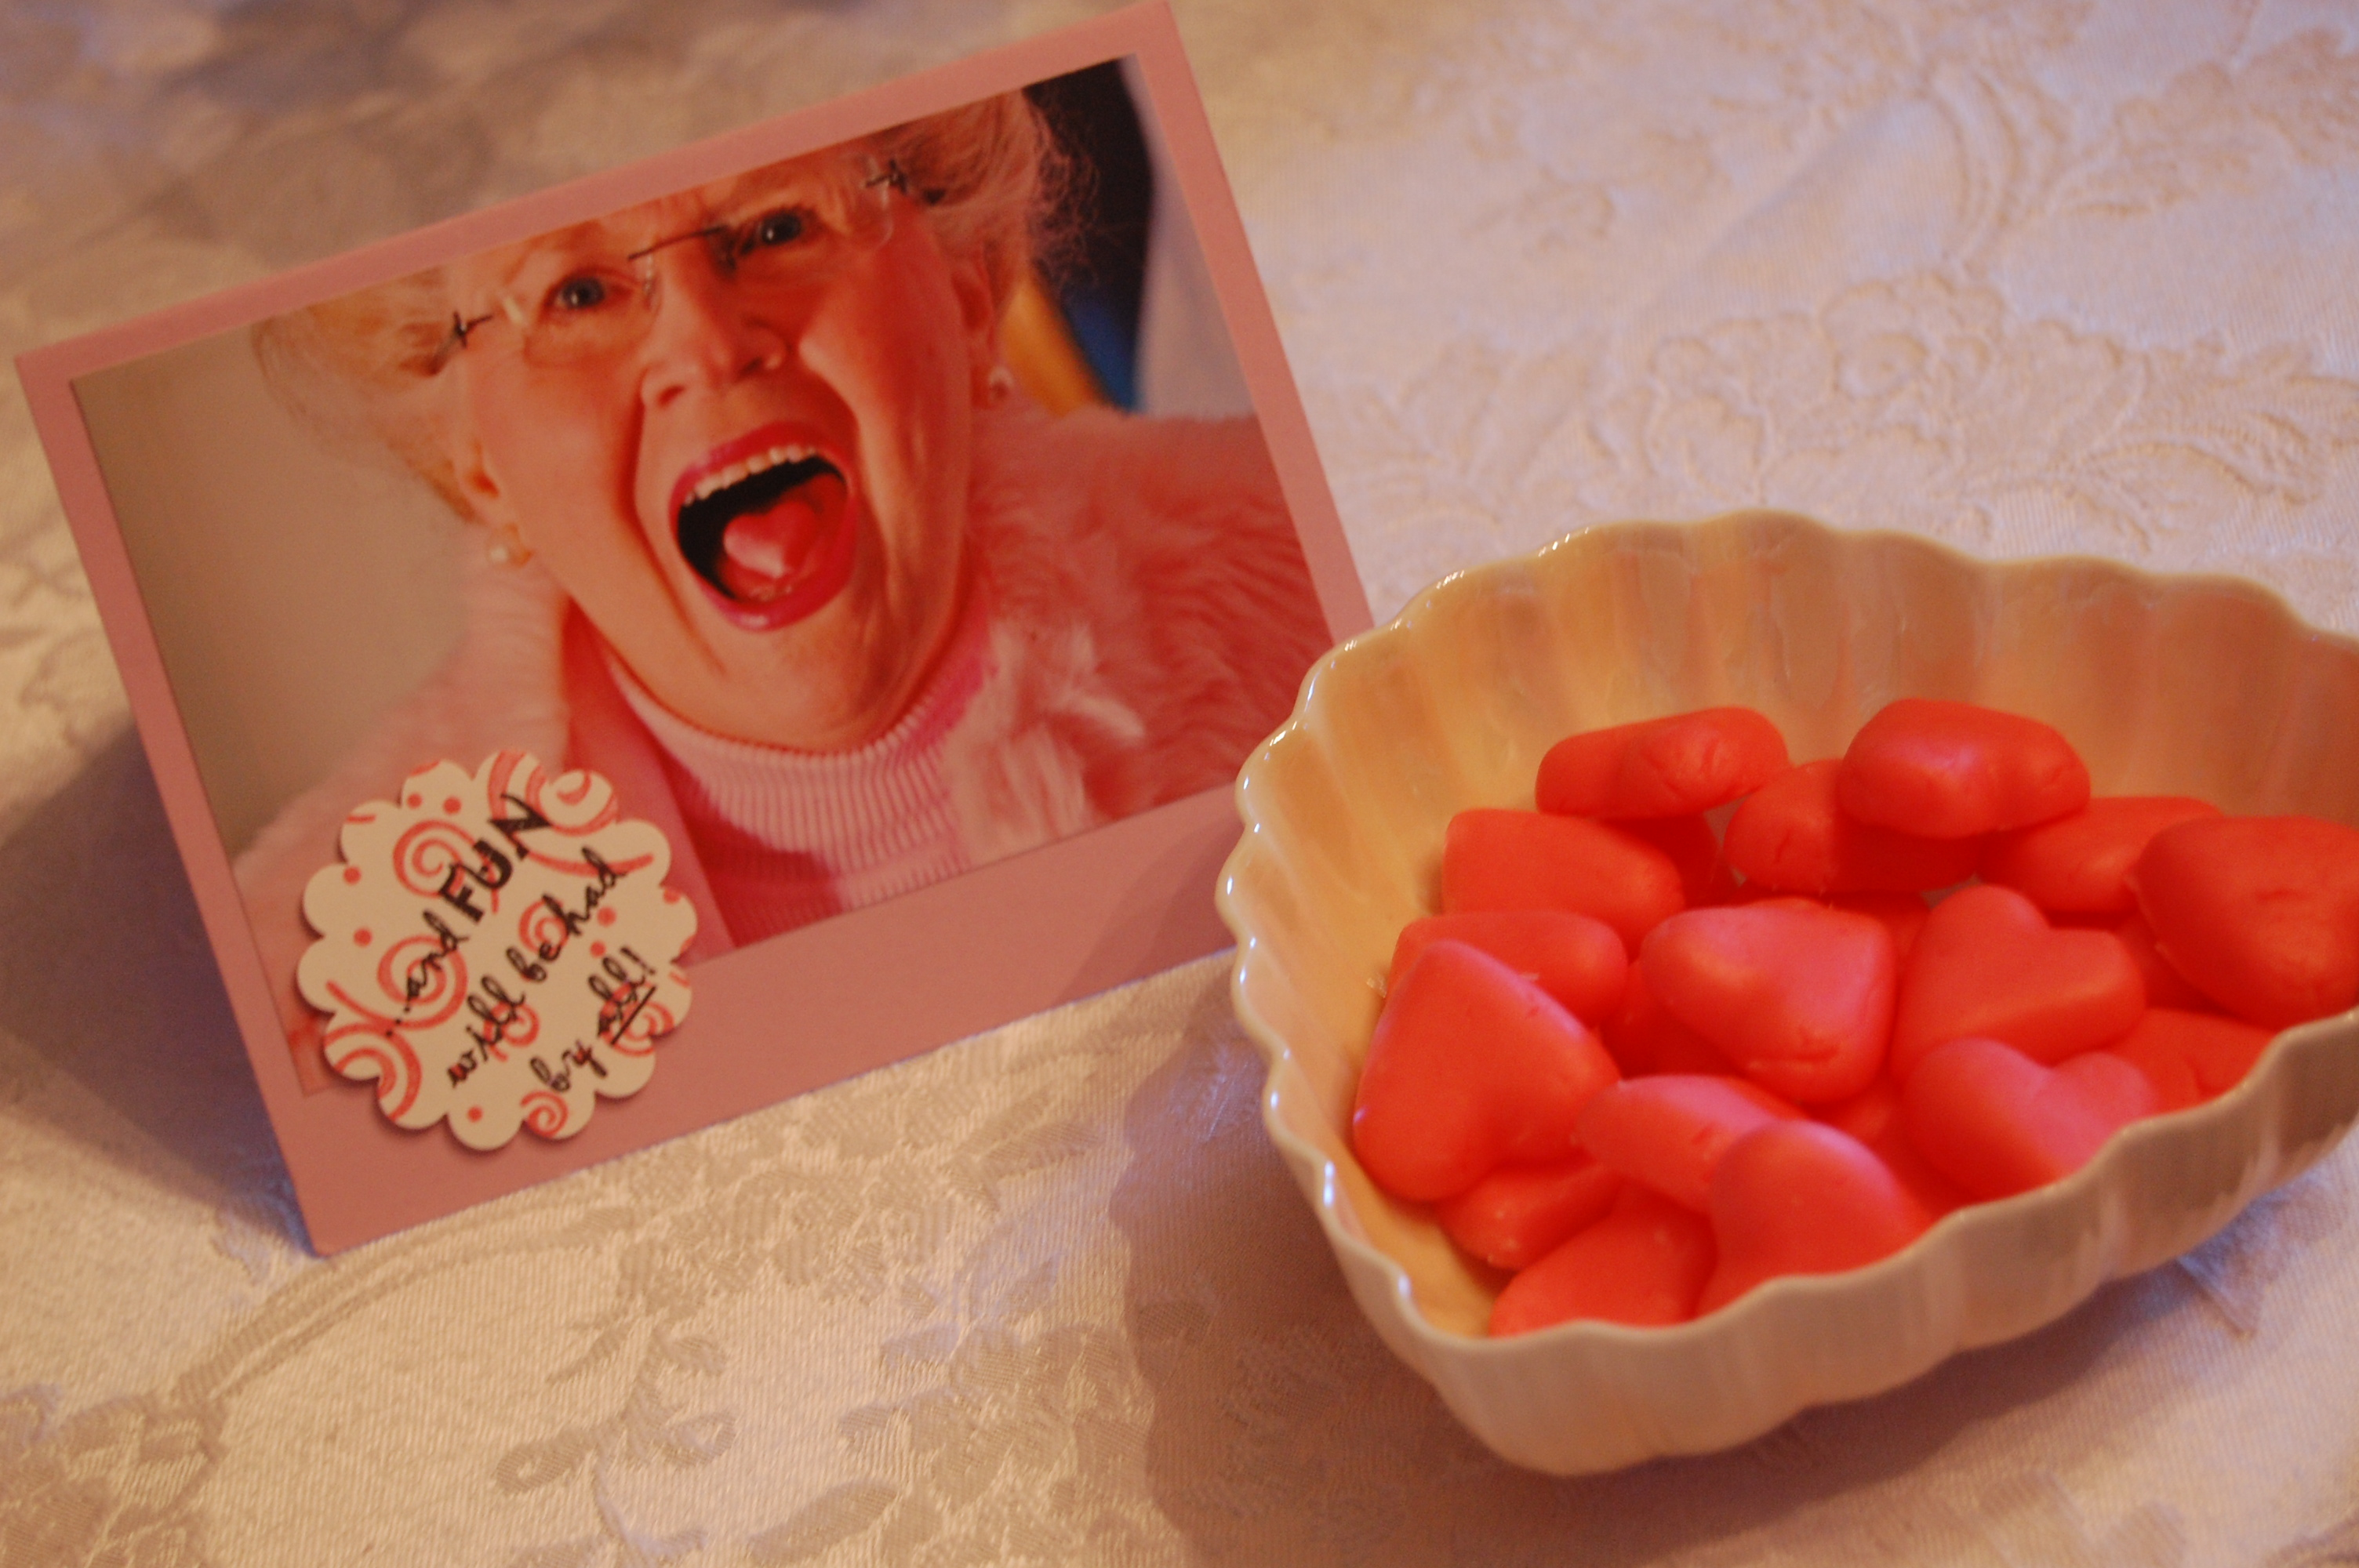 Valentine Tea Party invitation and mints